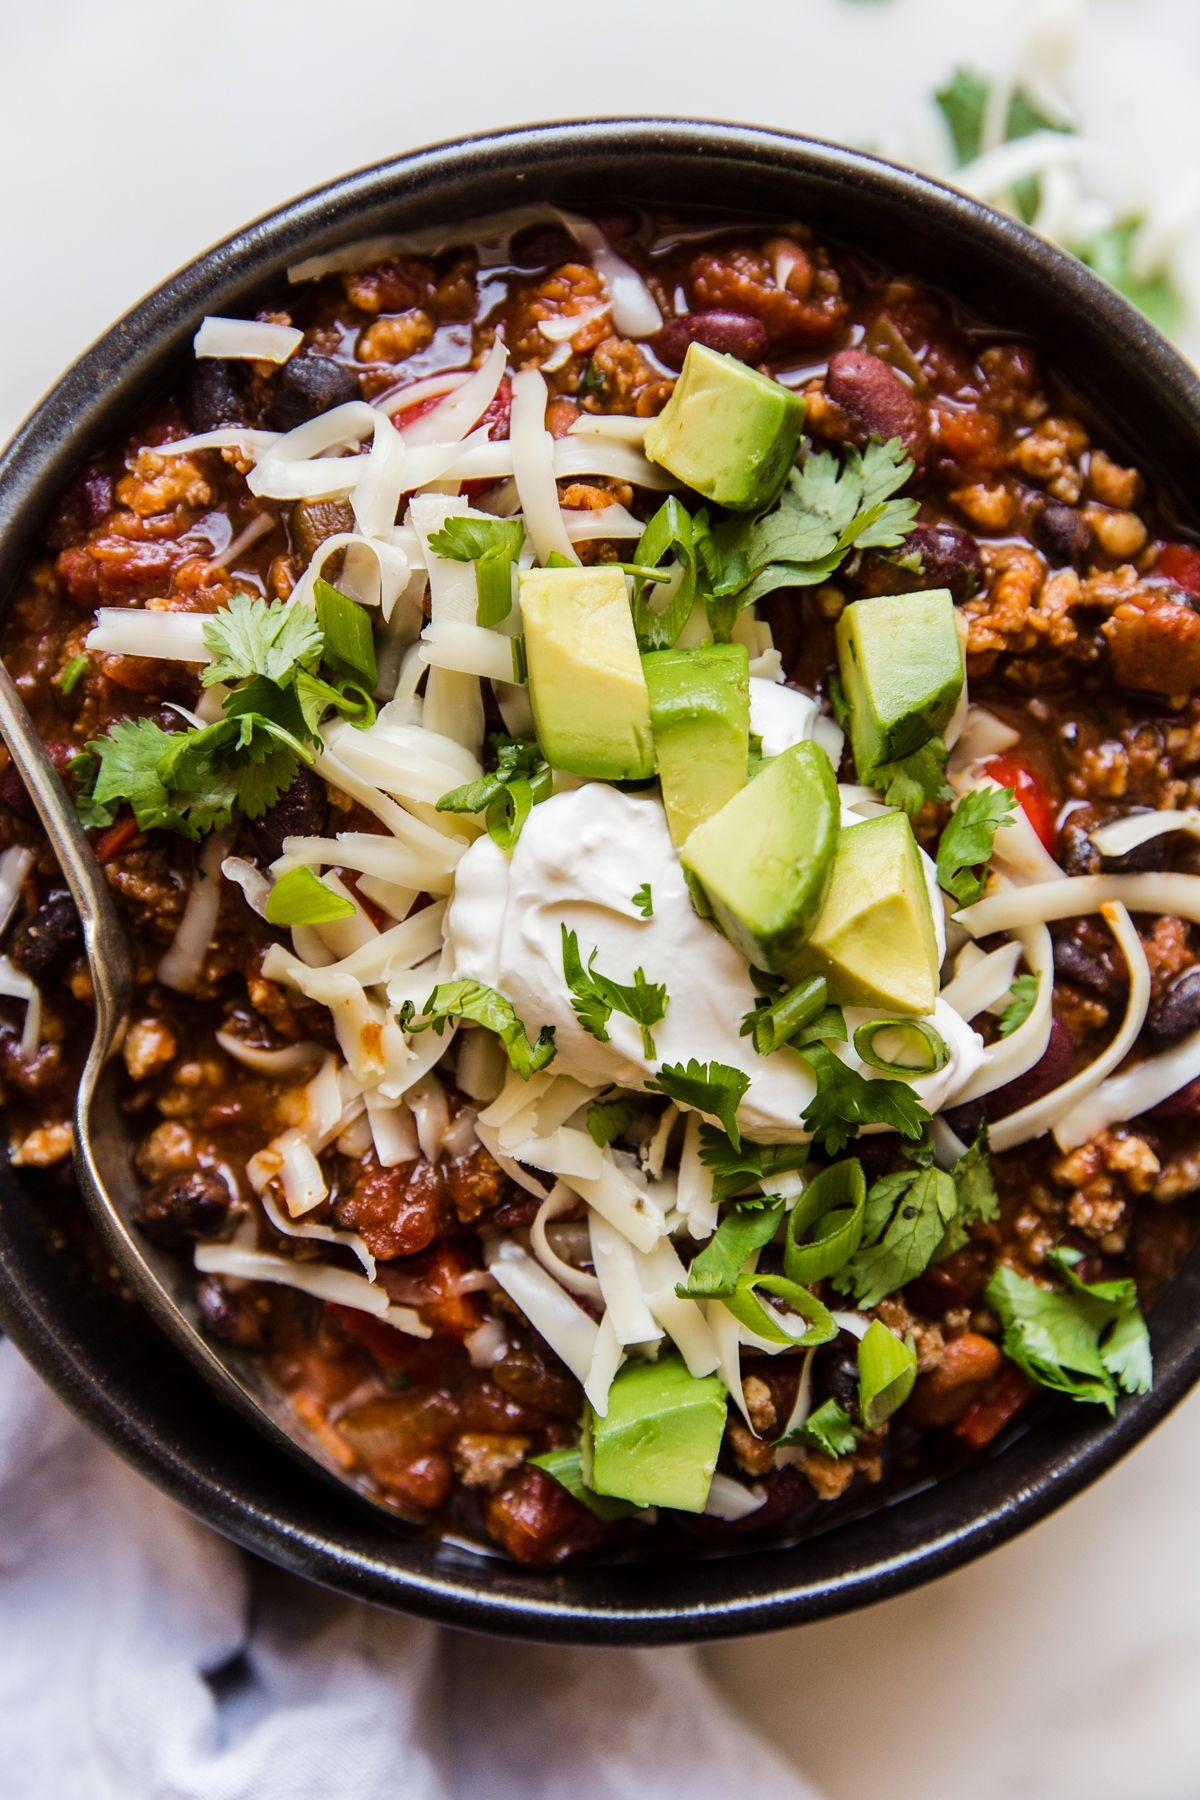 Award Winning Chili Recipe by The Modern Proper || Beef, pork, three kinds of beans and spices to spare conspire to make this hearty, stick-to-your-ribs chili your family's new game day go-to.